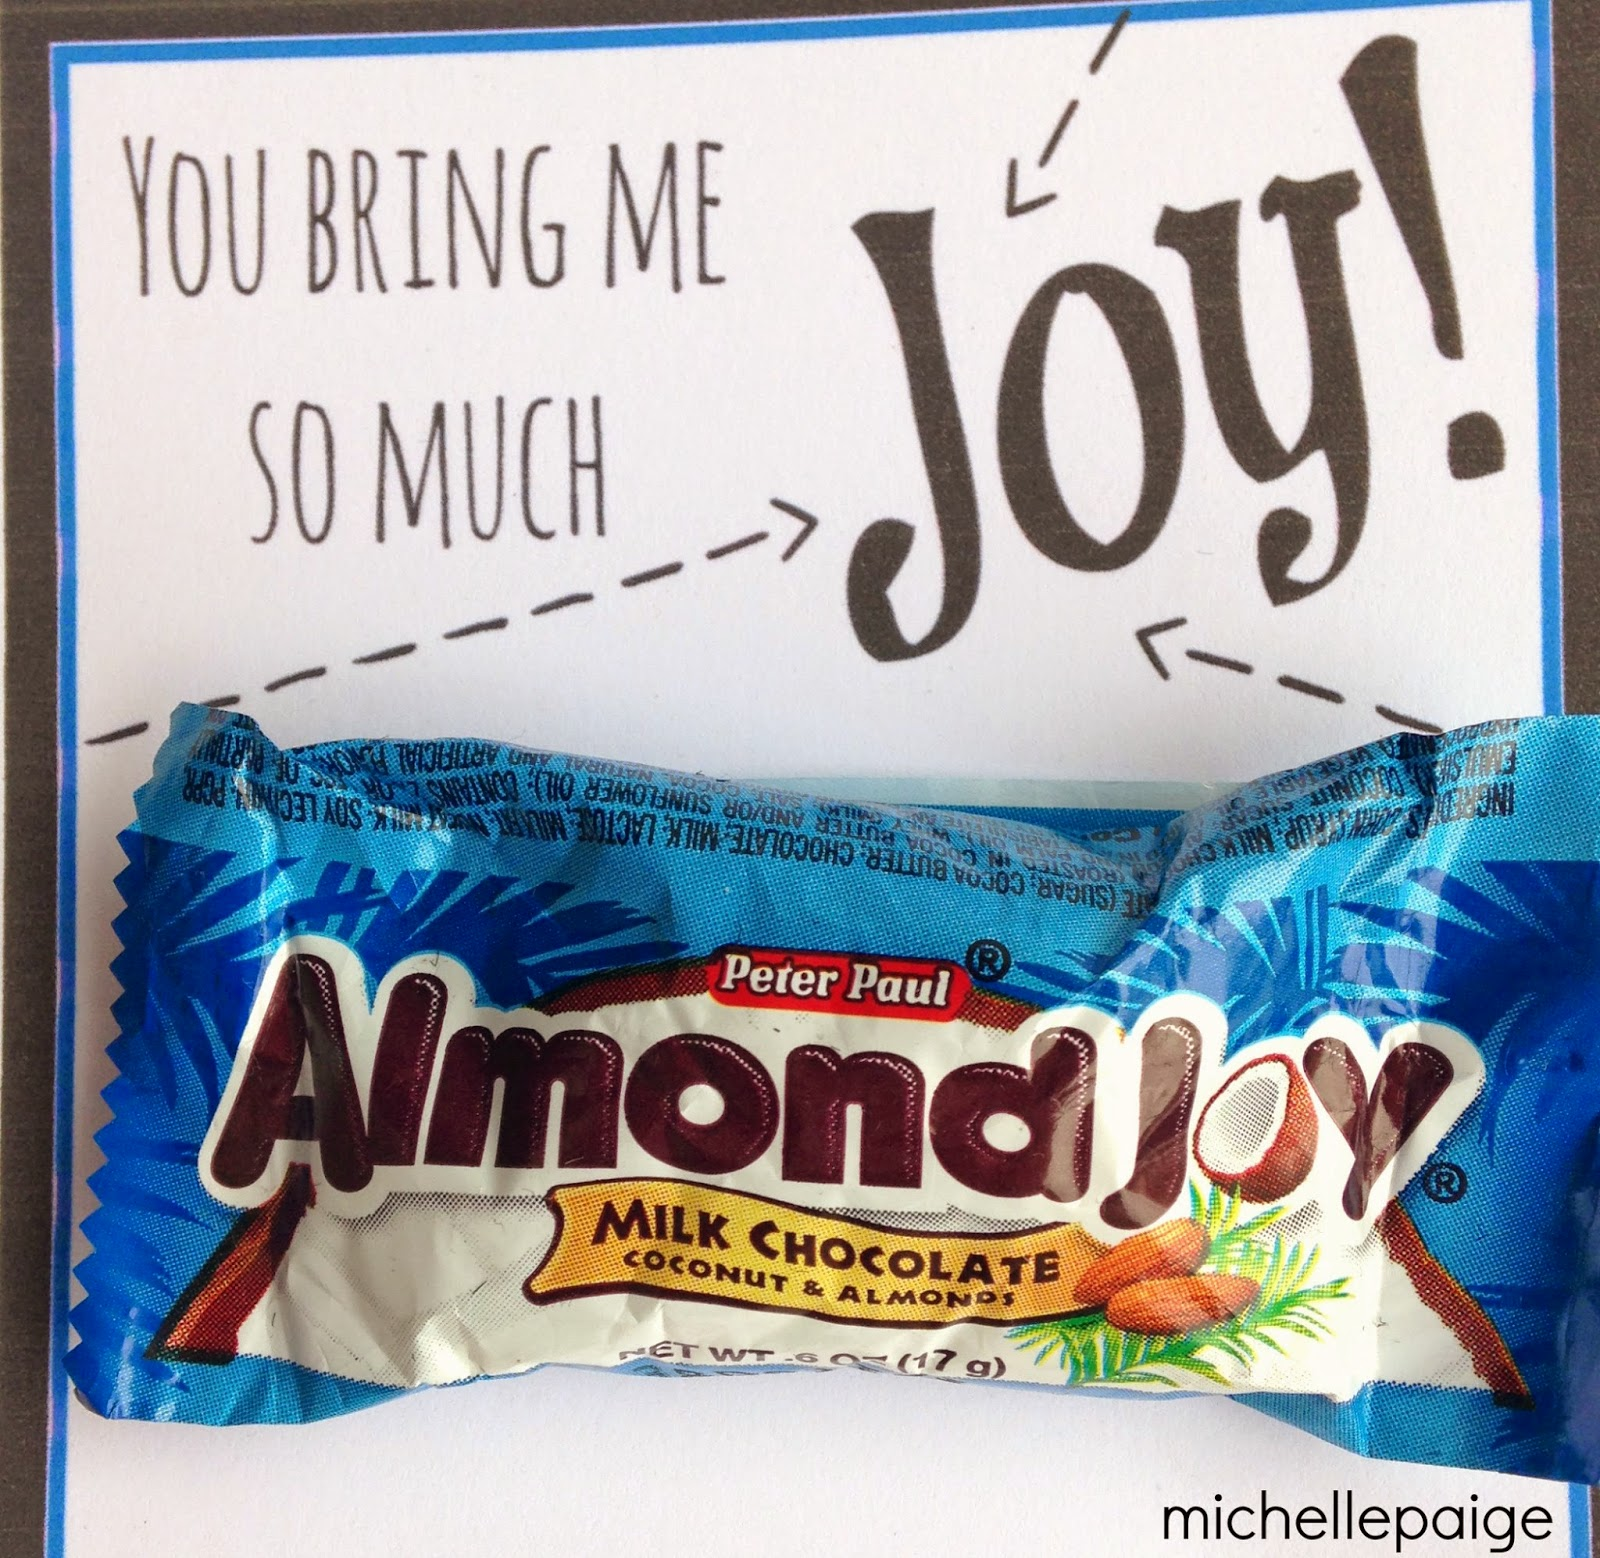 michelle paige blogs: You Bring Me Joy Thank You with ...